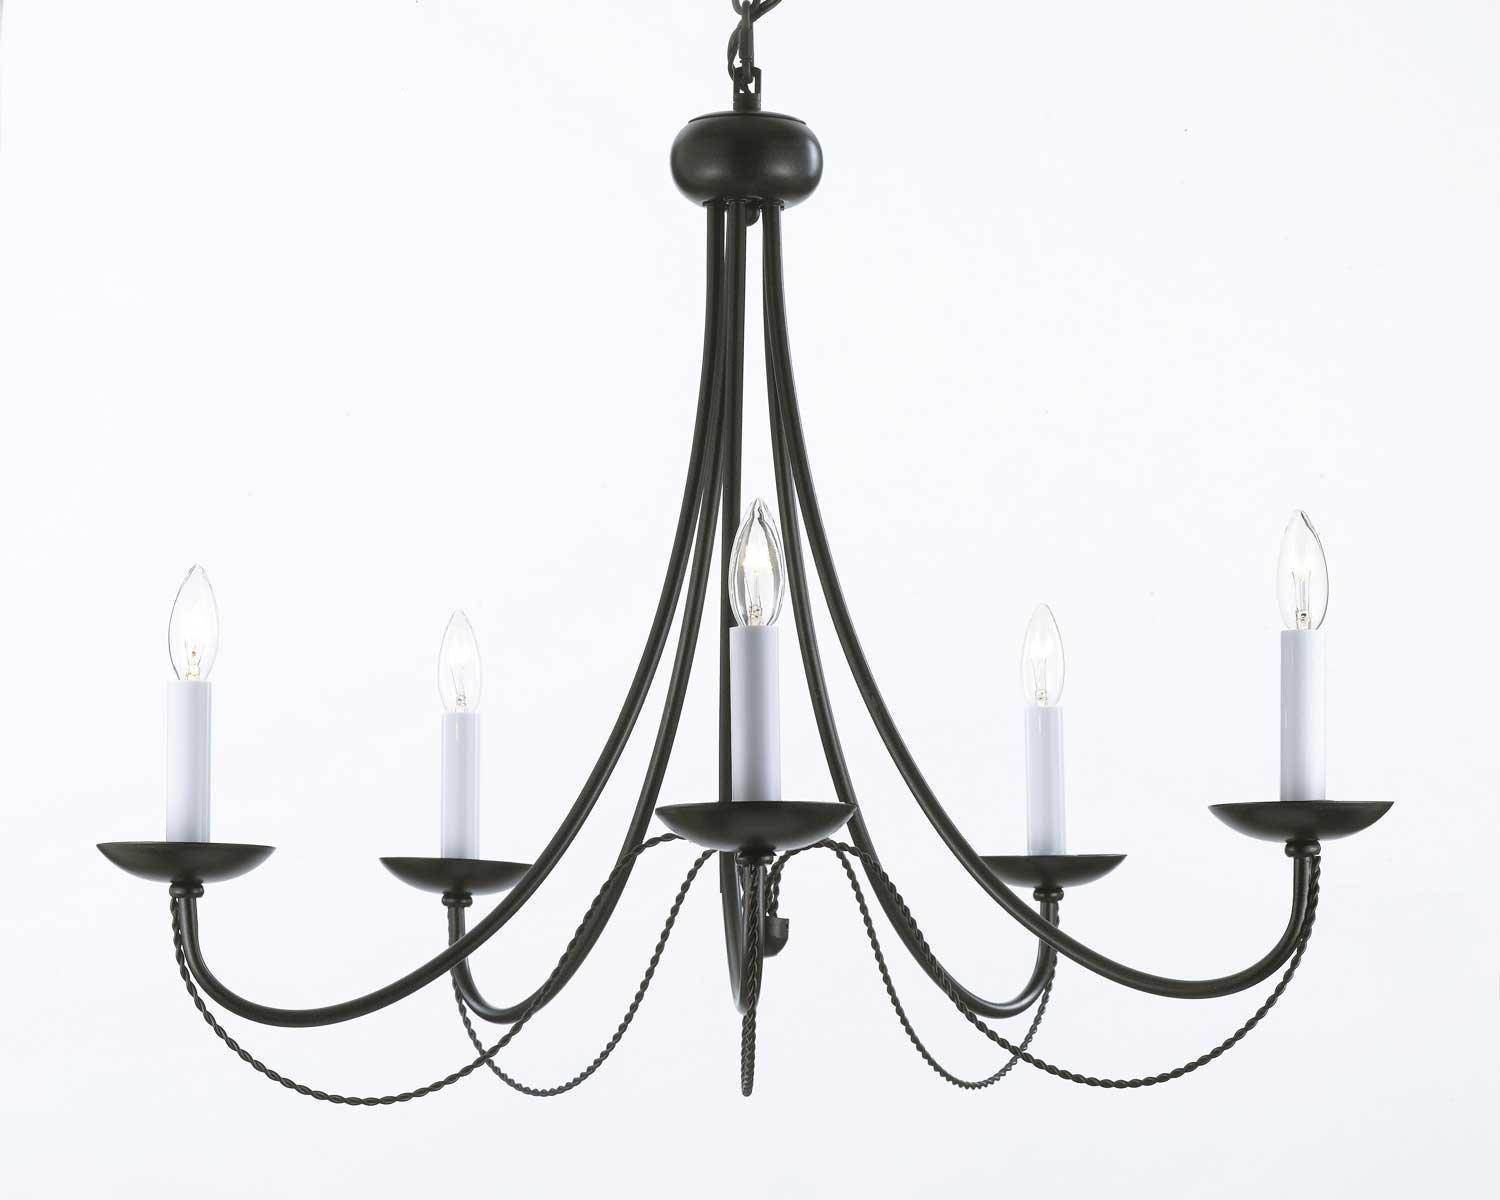 Wrought Iron Chandelier Lighting H22 x W26 With Swag Plug In Chandelier Lighting Chandelier